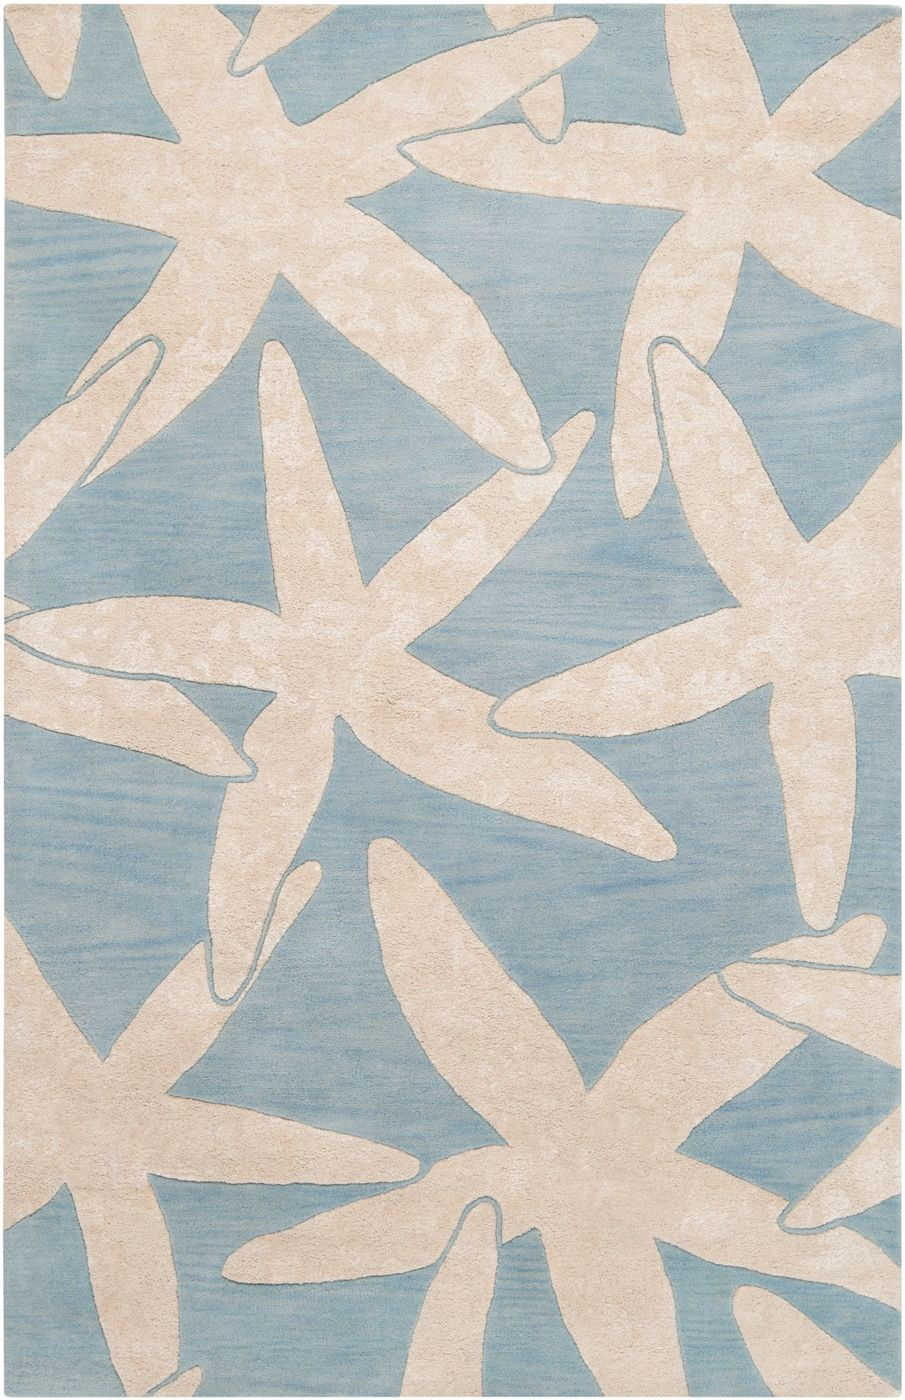 Escape Starfish Area Rug Ivory On Dusk Blue Beach Decor Coastal Nautical Tropical Luxury Cottage